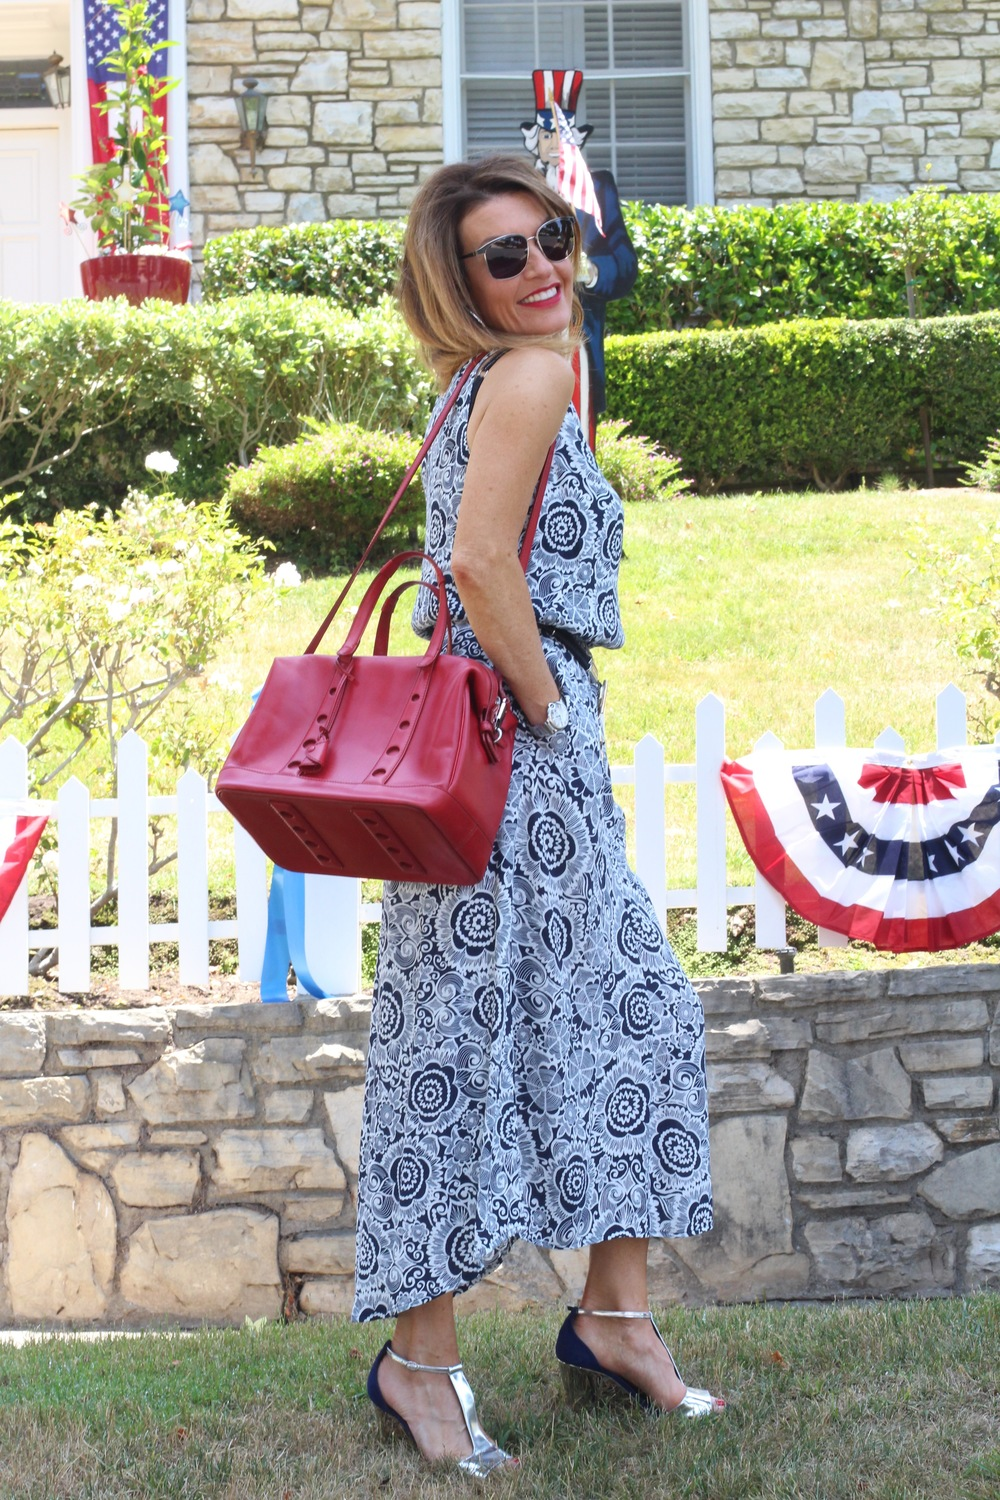 CAbi Twirl Dress, Worth New York Belt, Myriam Schafer Handbag, Rupert Sanderson Sandals, on sale here, John Hardy Earrings and Bracelets, Cartier Watch, Oliver Peoples Sunglasses, Mac Ruby Woo Lip Color, Essie Really Red Nail Polish.